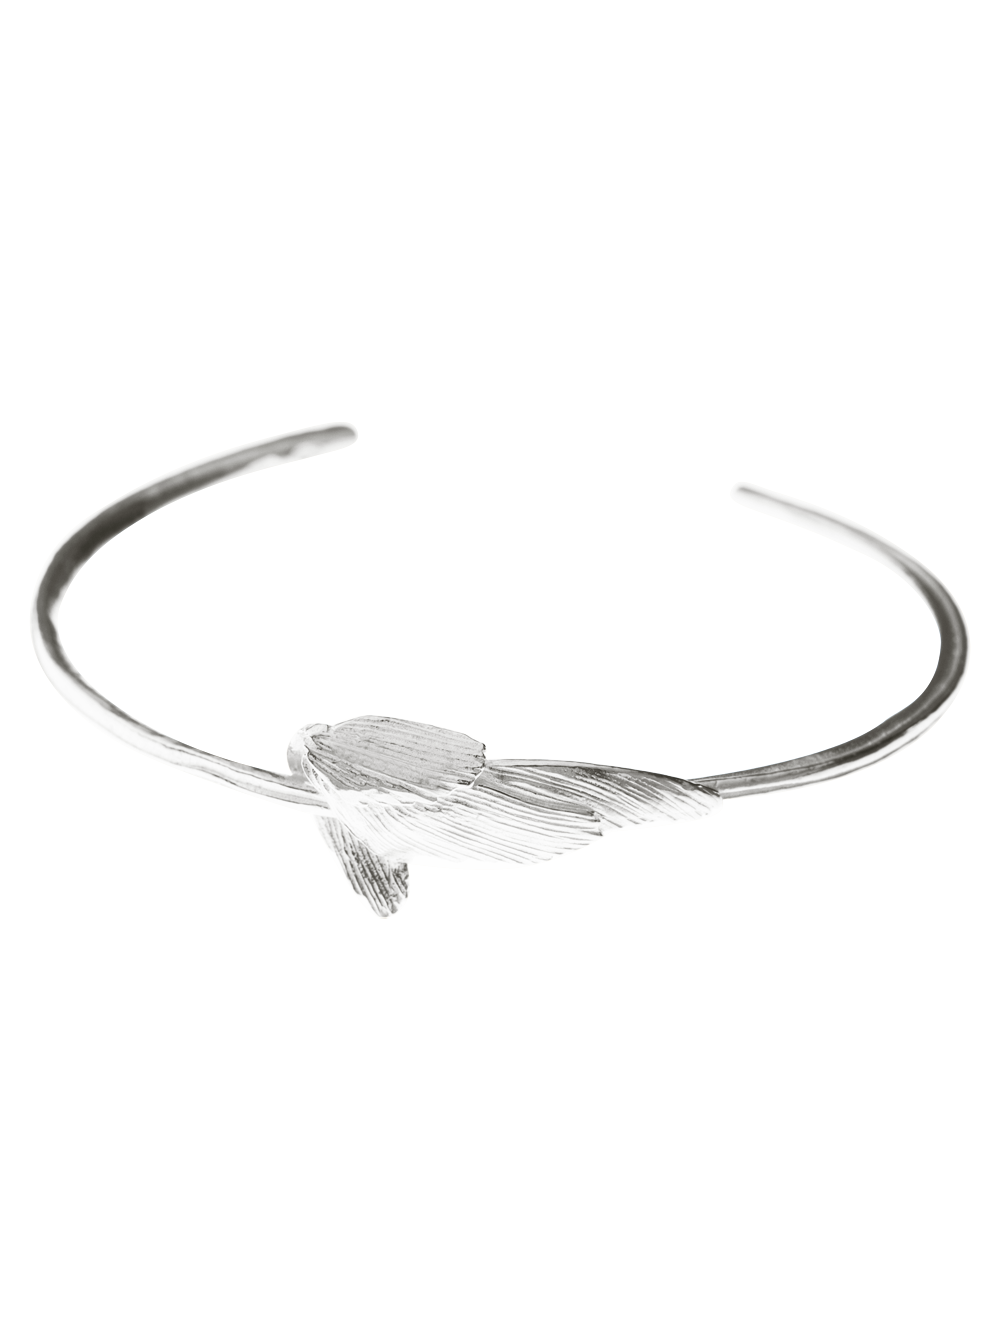 925 Silver Swan Bracelet - Statement Jewellery Design